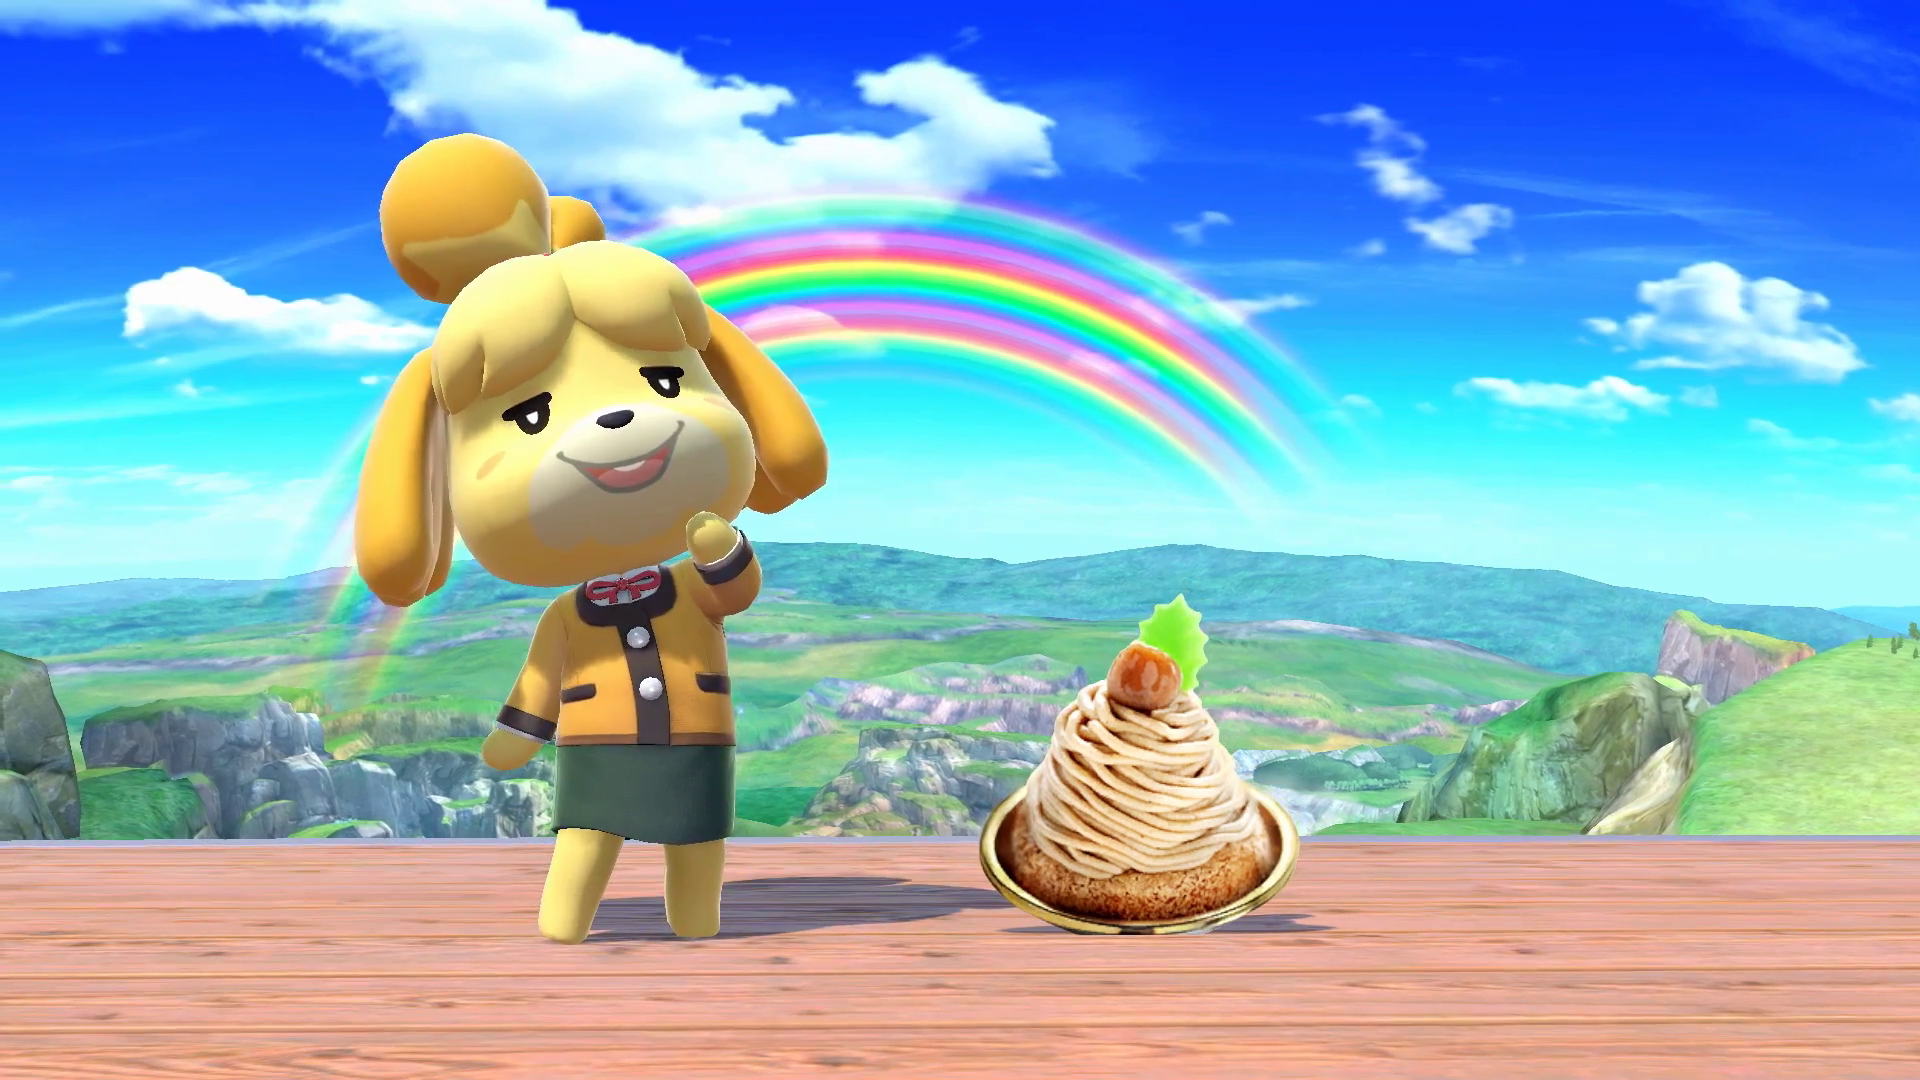 Super Smash Bros. Ultimate - Isabelle from Animal Crossing